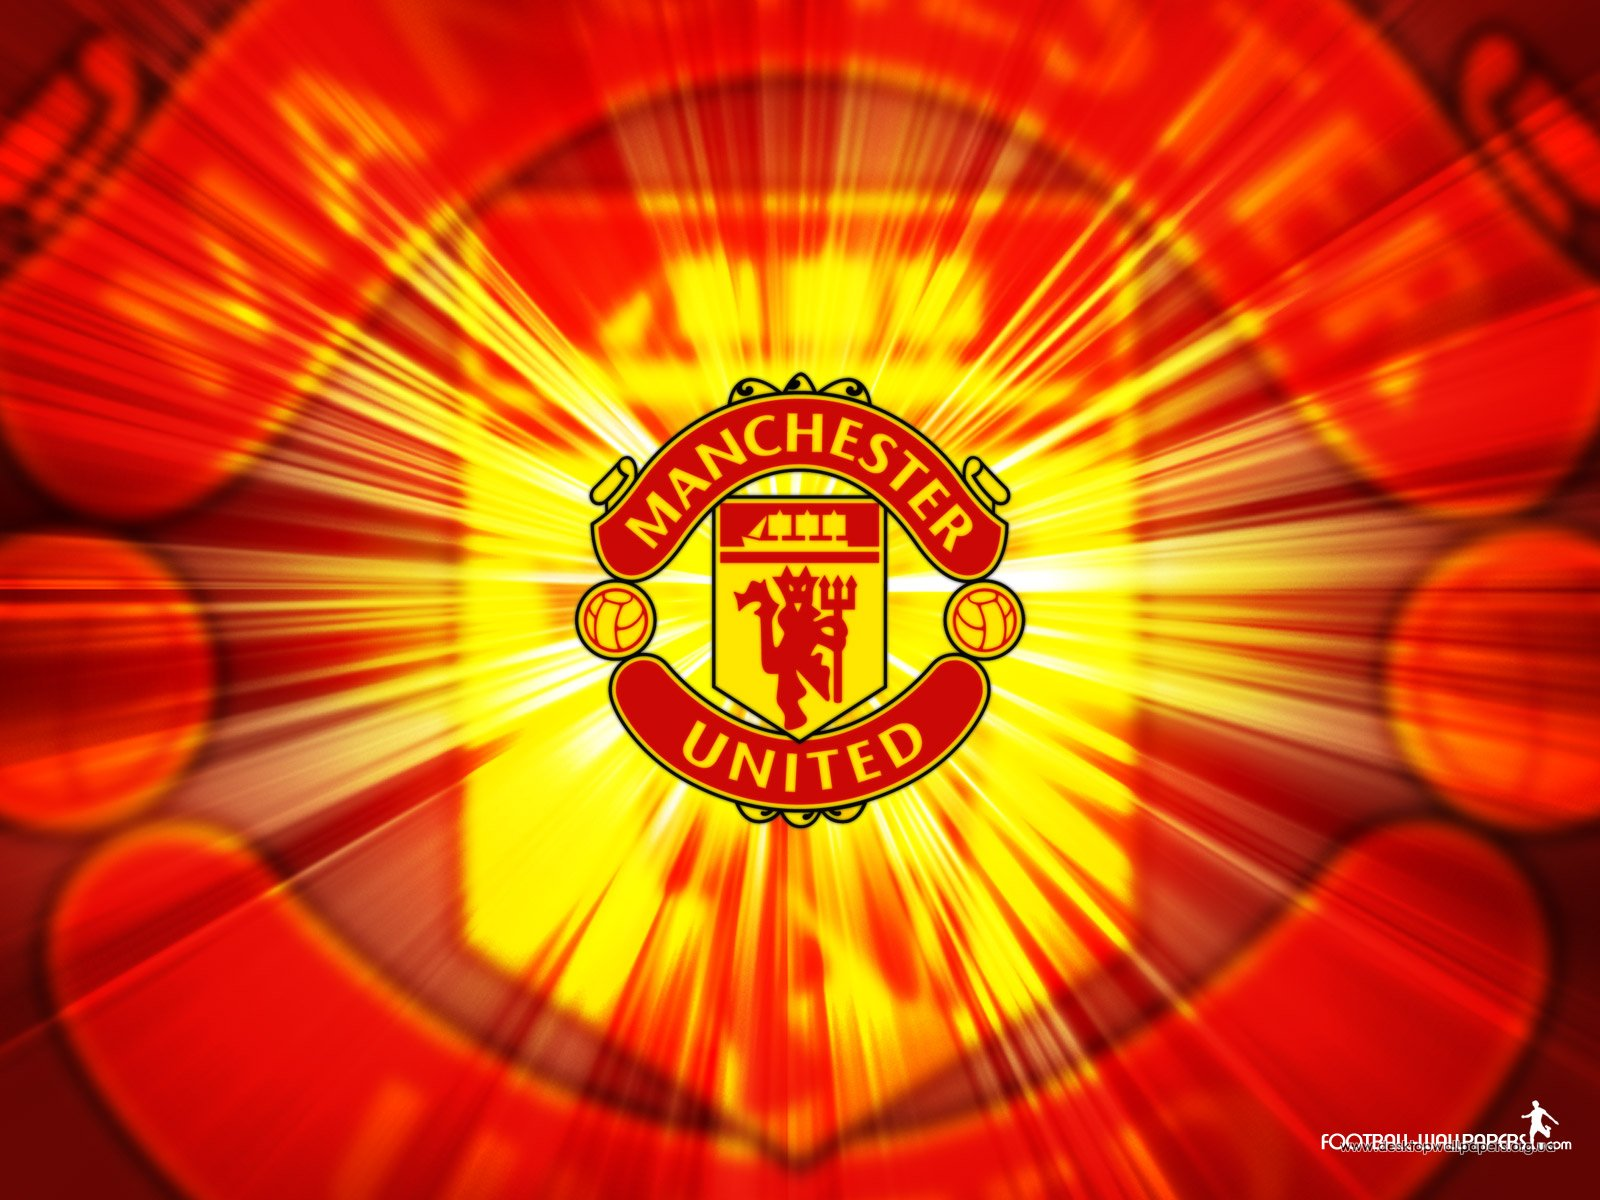 Free Wallpaper Download - thusspokebelinsky: 10+ Manchester United Wallpaper